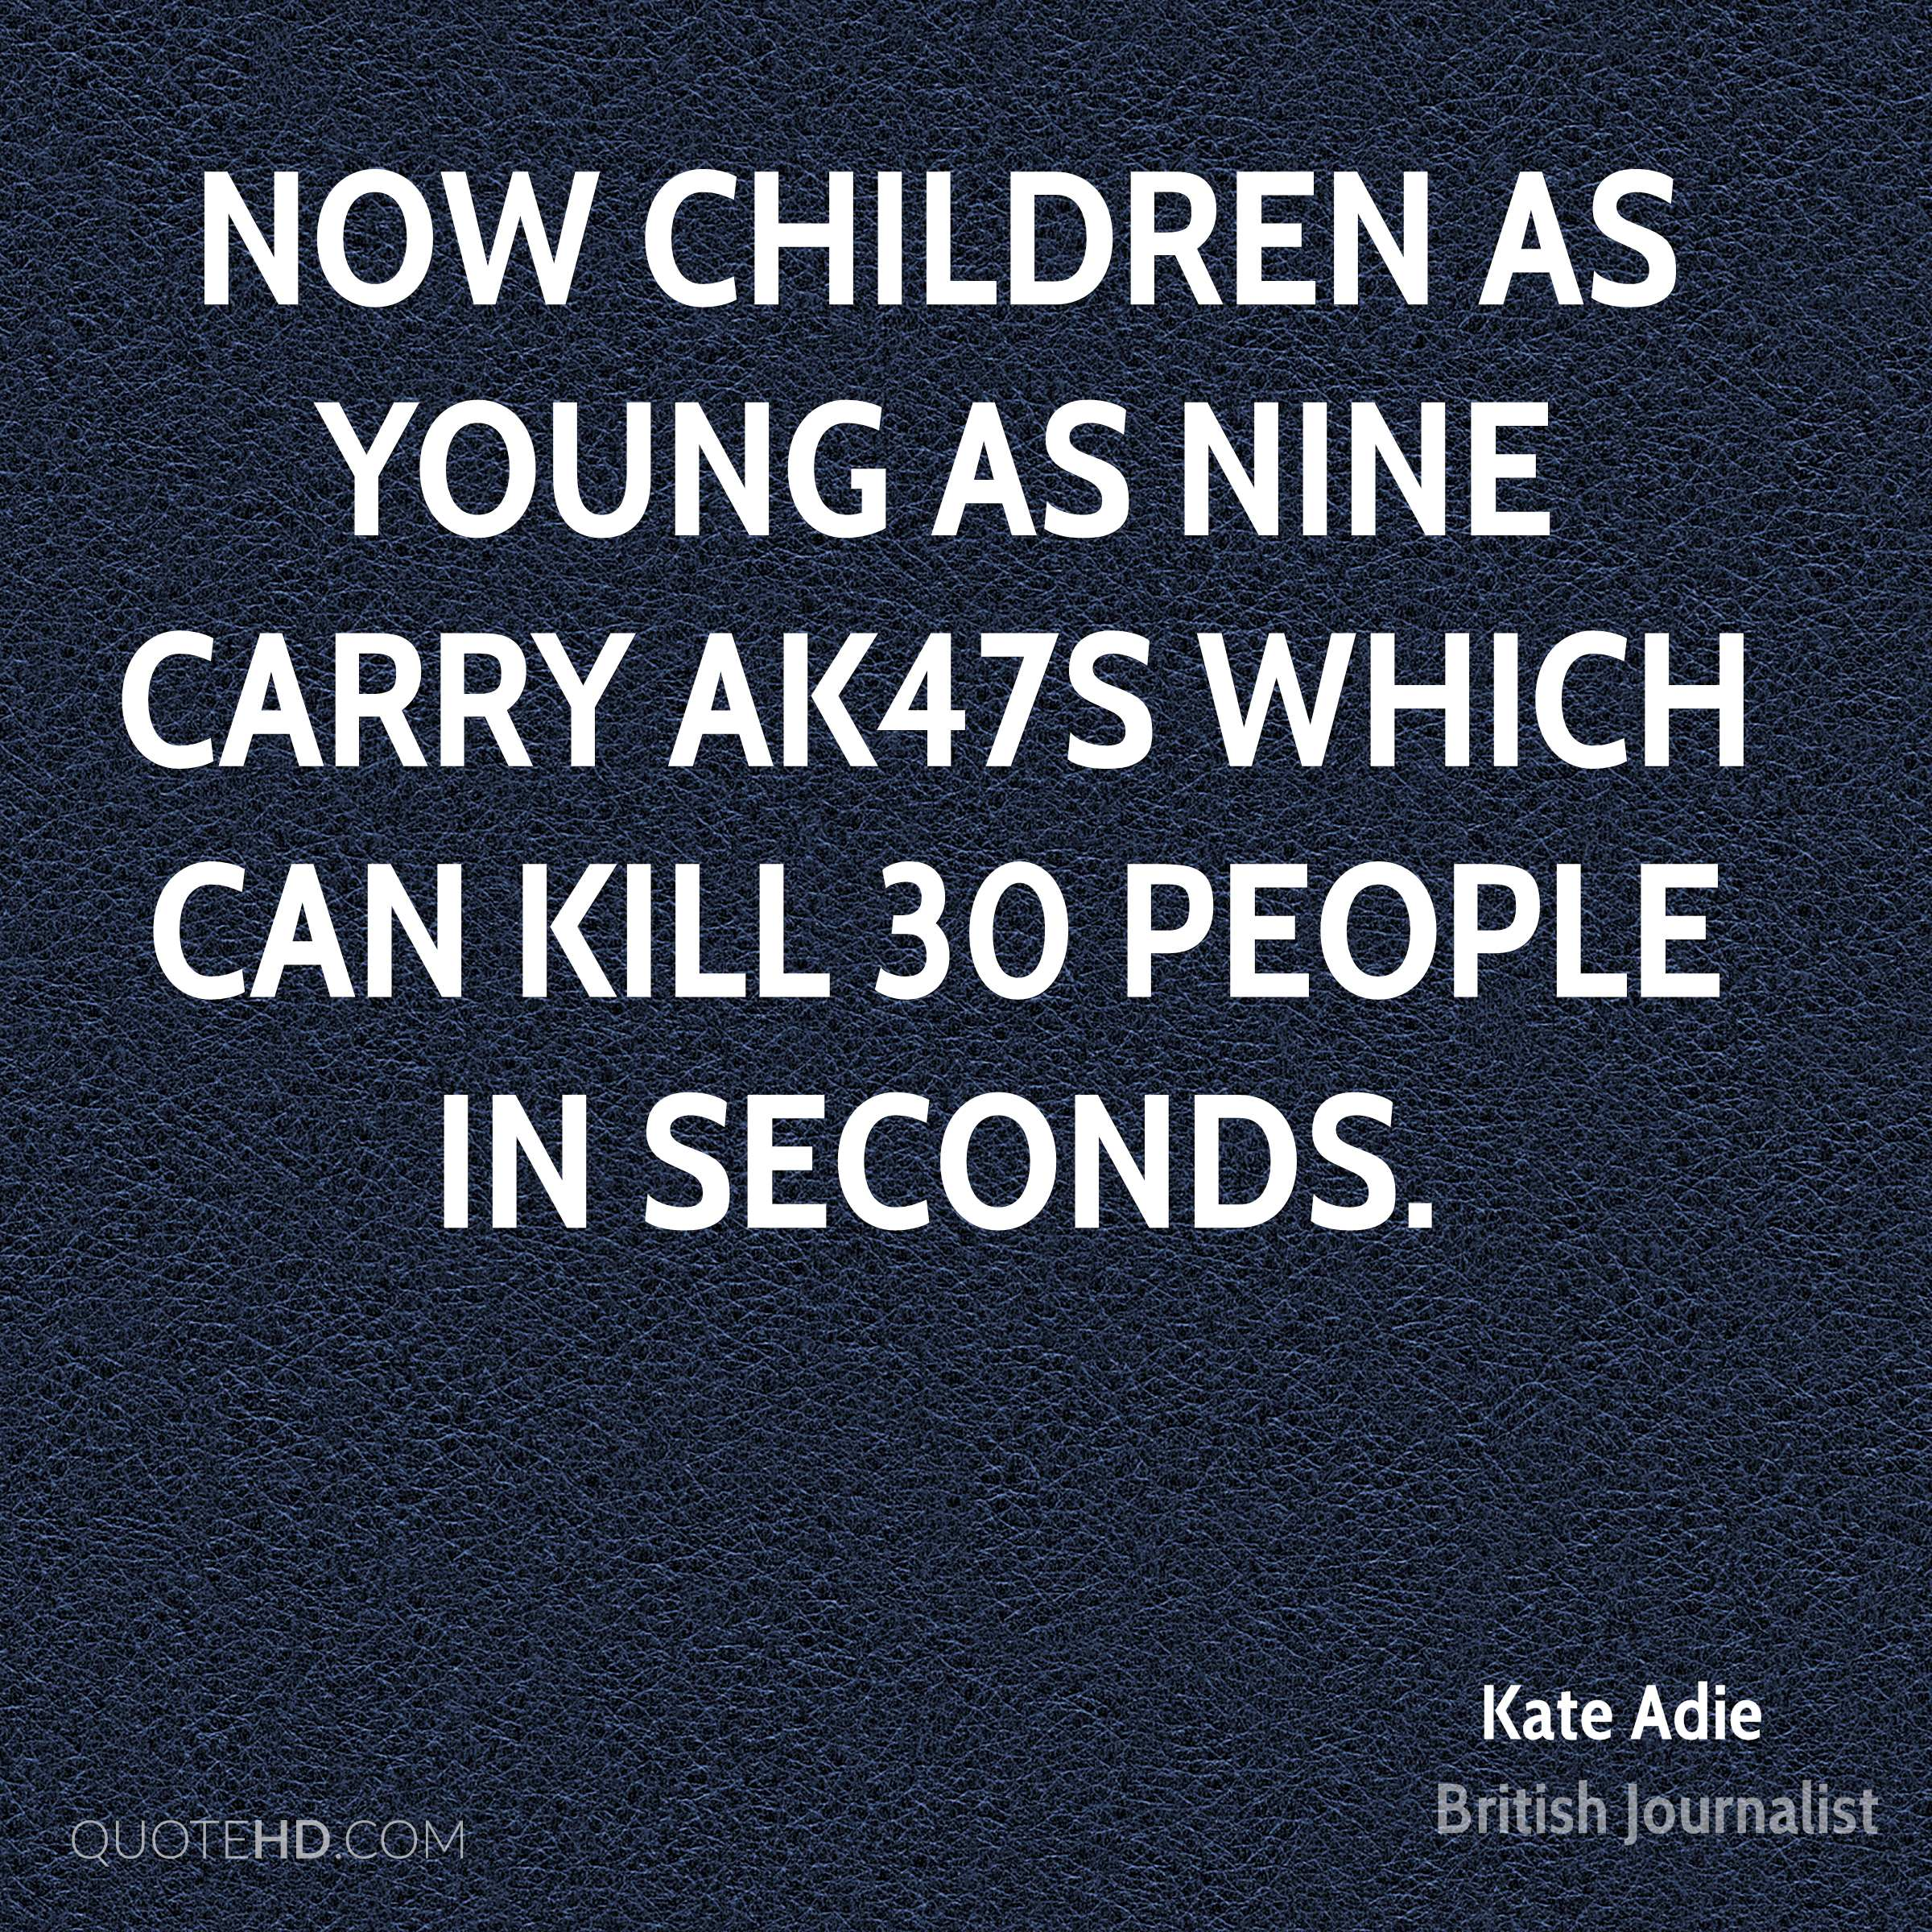 Now children as young as nine carry AK47s which can kill 30 people in seconds.